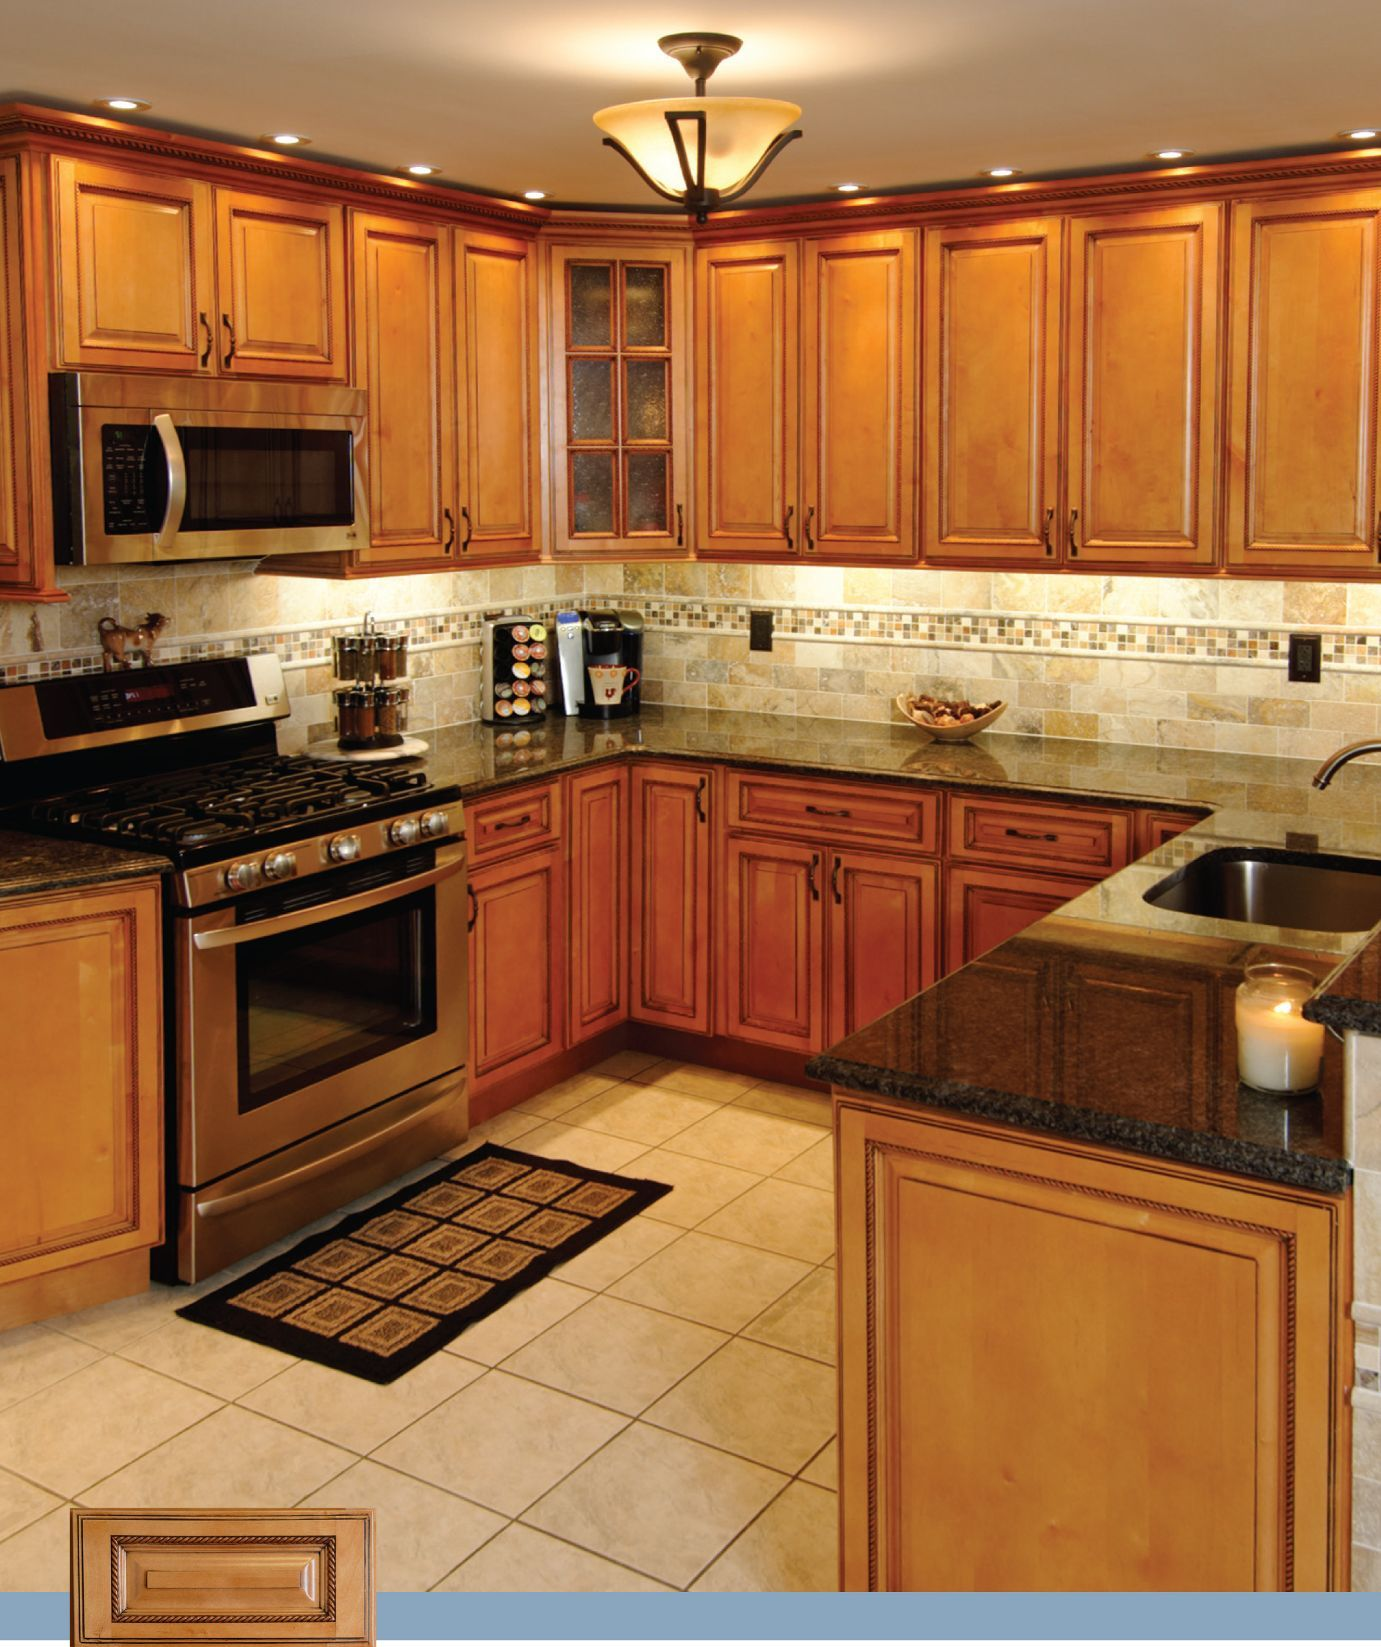 Pictures Of Oak Kitchen Cabinets: Google Image Result For Http://www.kitchencabinetdiscounts